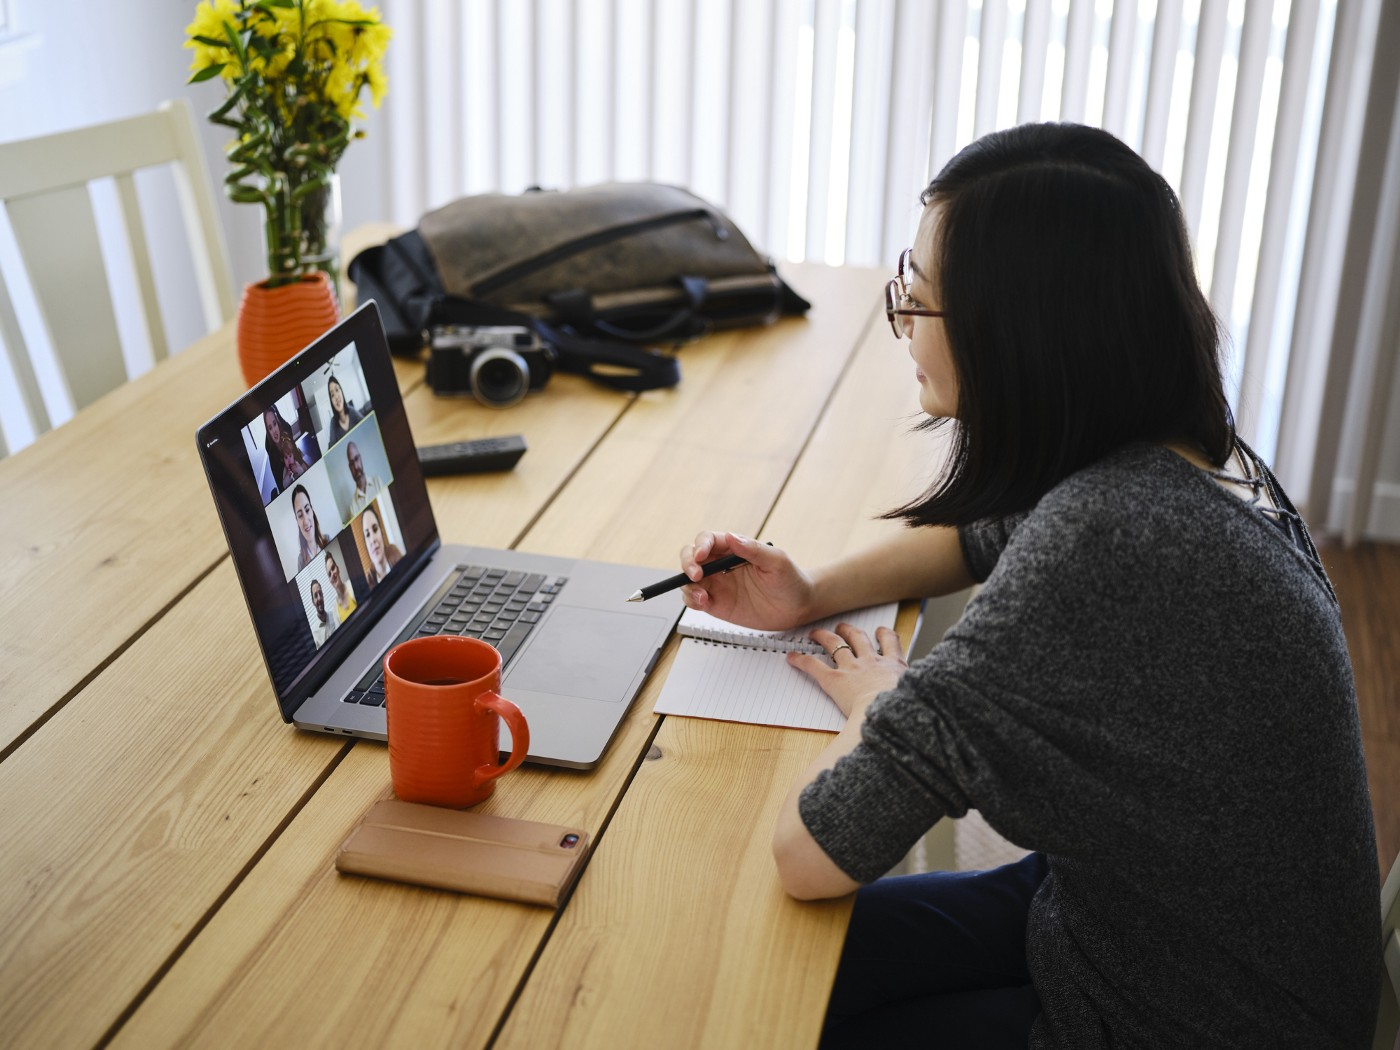 A woman working at home participating in a team video conference call.